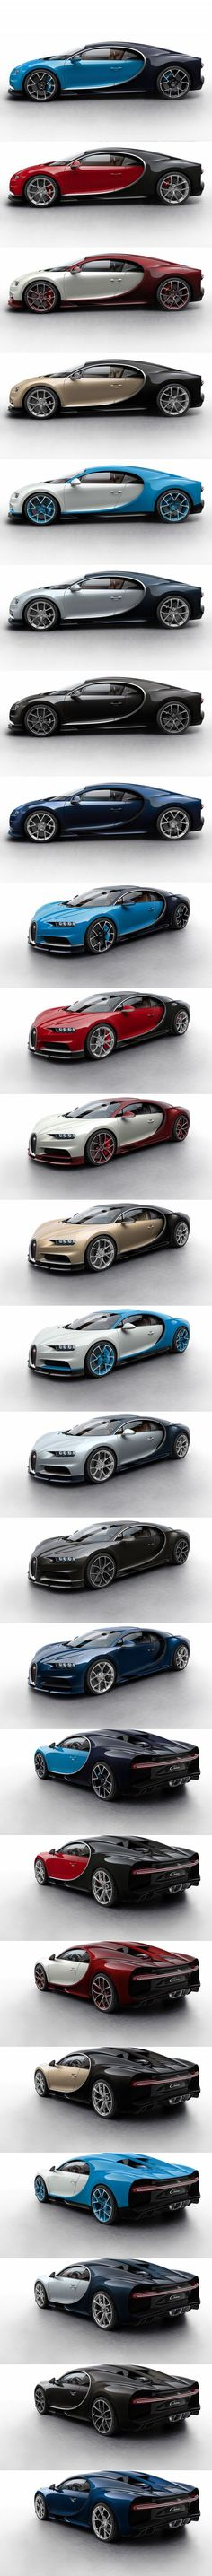 For more cool pictures, visit: http://bestcar.solutions/2016-bugatti-chiron-configurator-france-blue-red-black-white-brown-silver